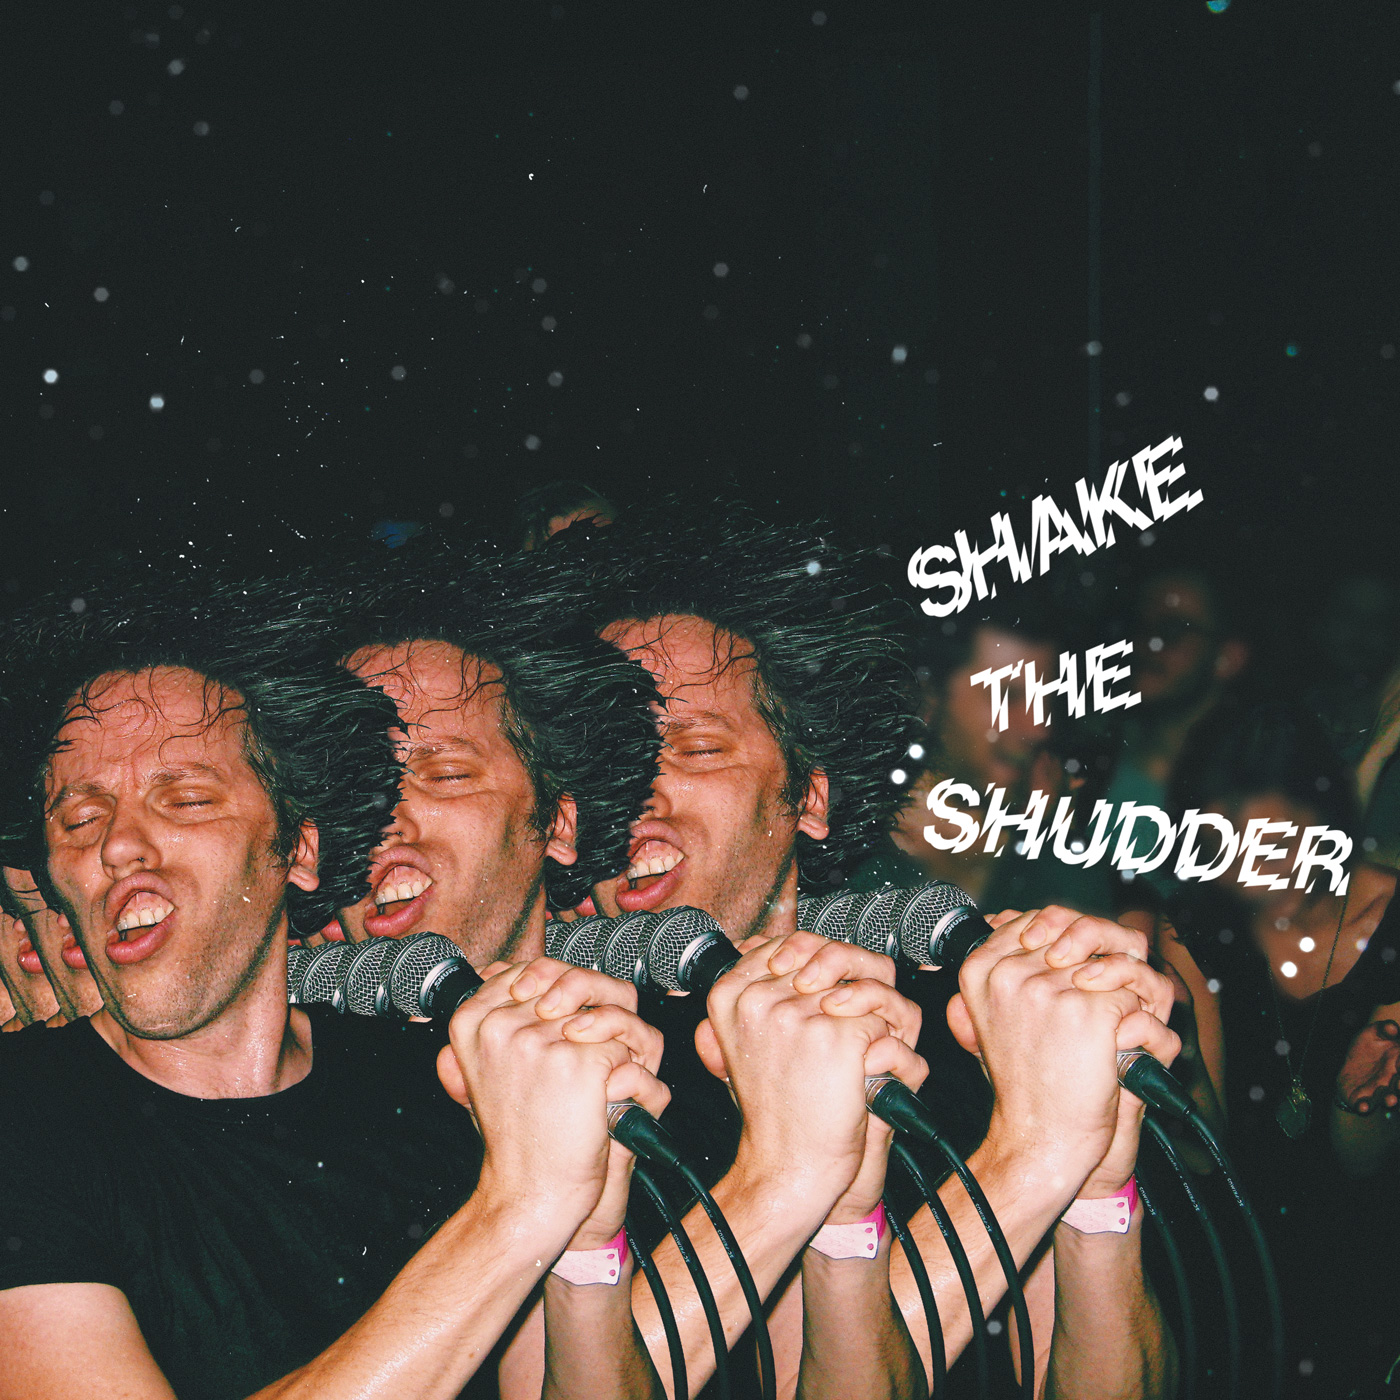 chk chk chk - shake the shudder